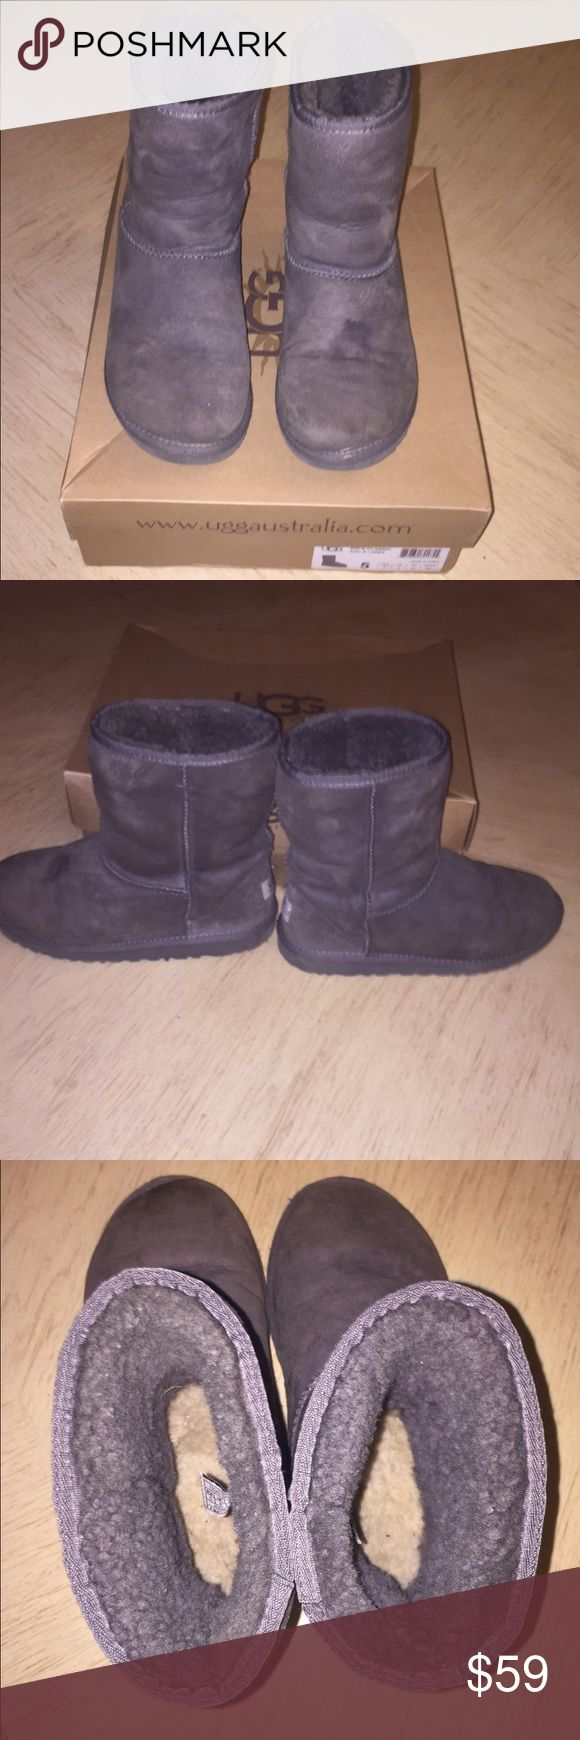 Short Grey Ugg Boots Short Grey Ugg Boots. Has a Stain on the Toe, (Pictured)I have Not Tried to Treat or Clean it Some Wear & Tear, in Ok Condition. Still Super Comfy!! Please Feel Free to Make an Offer! Please Ask if You have Any Questions Before Buying! Thank you UGG Shoes Boots